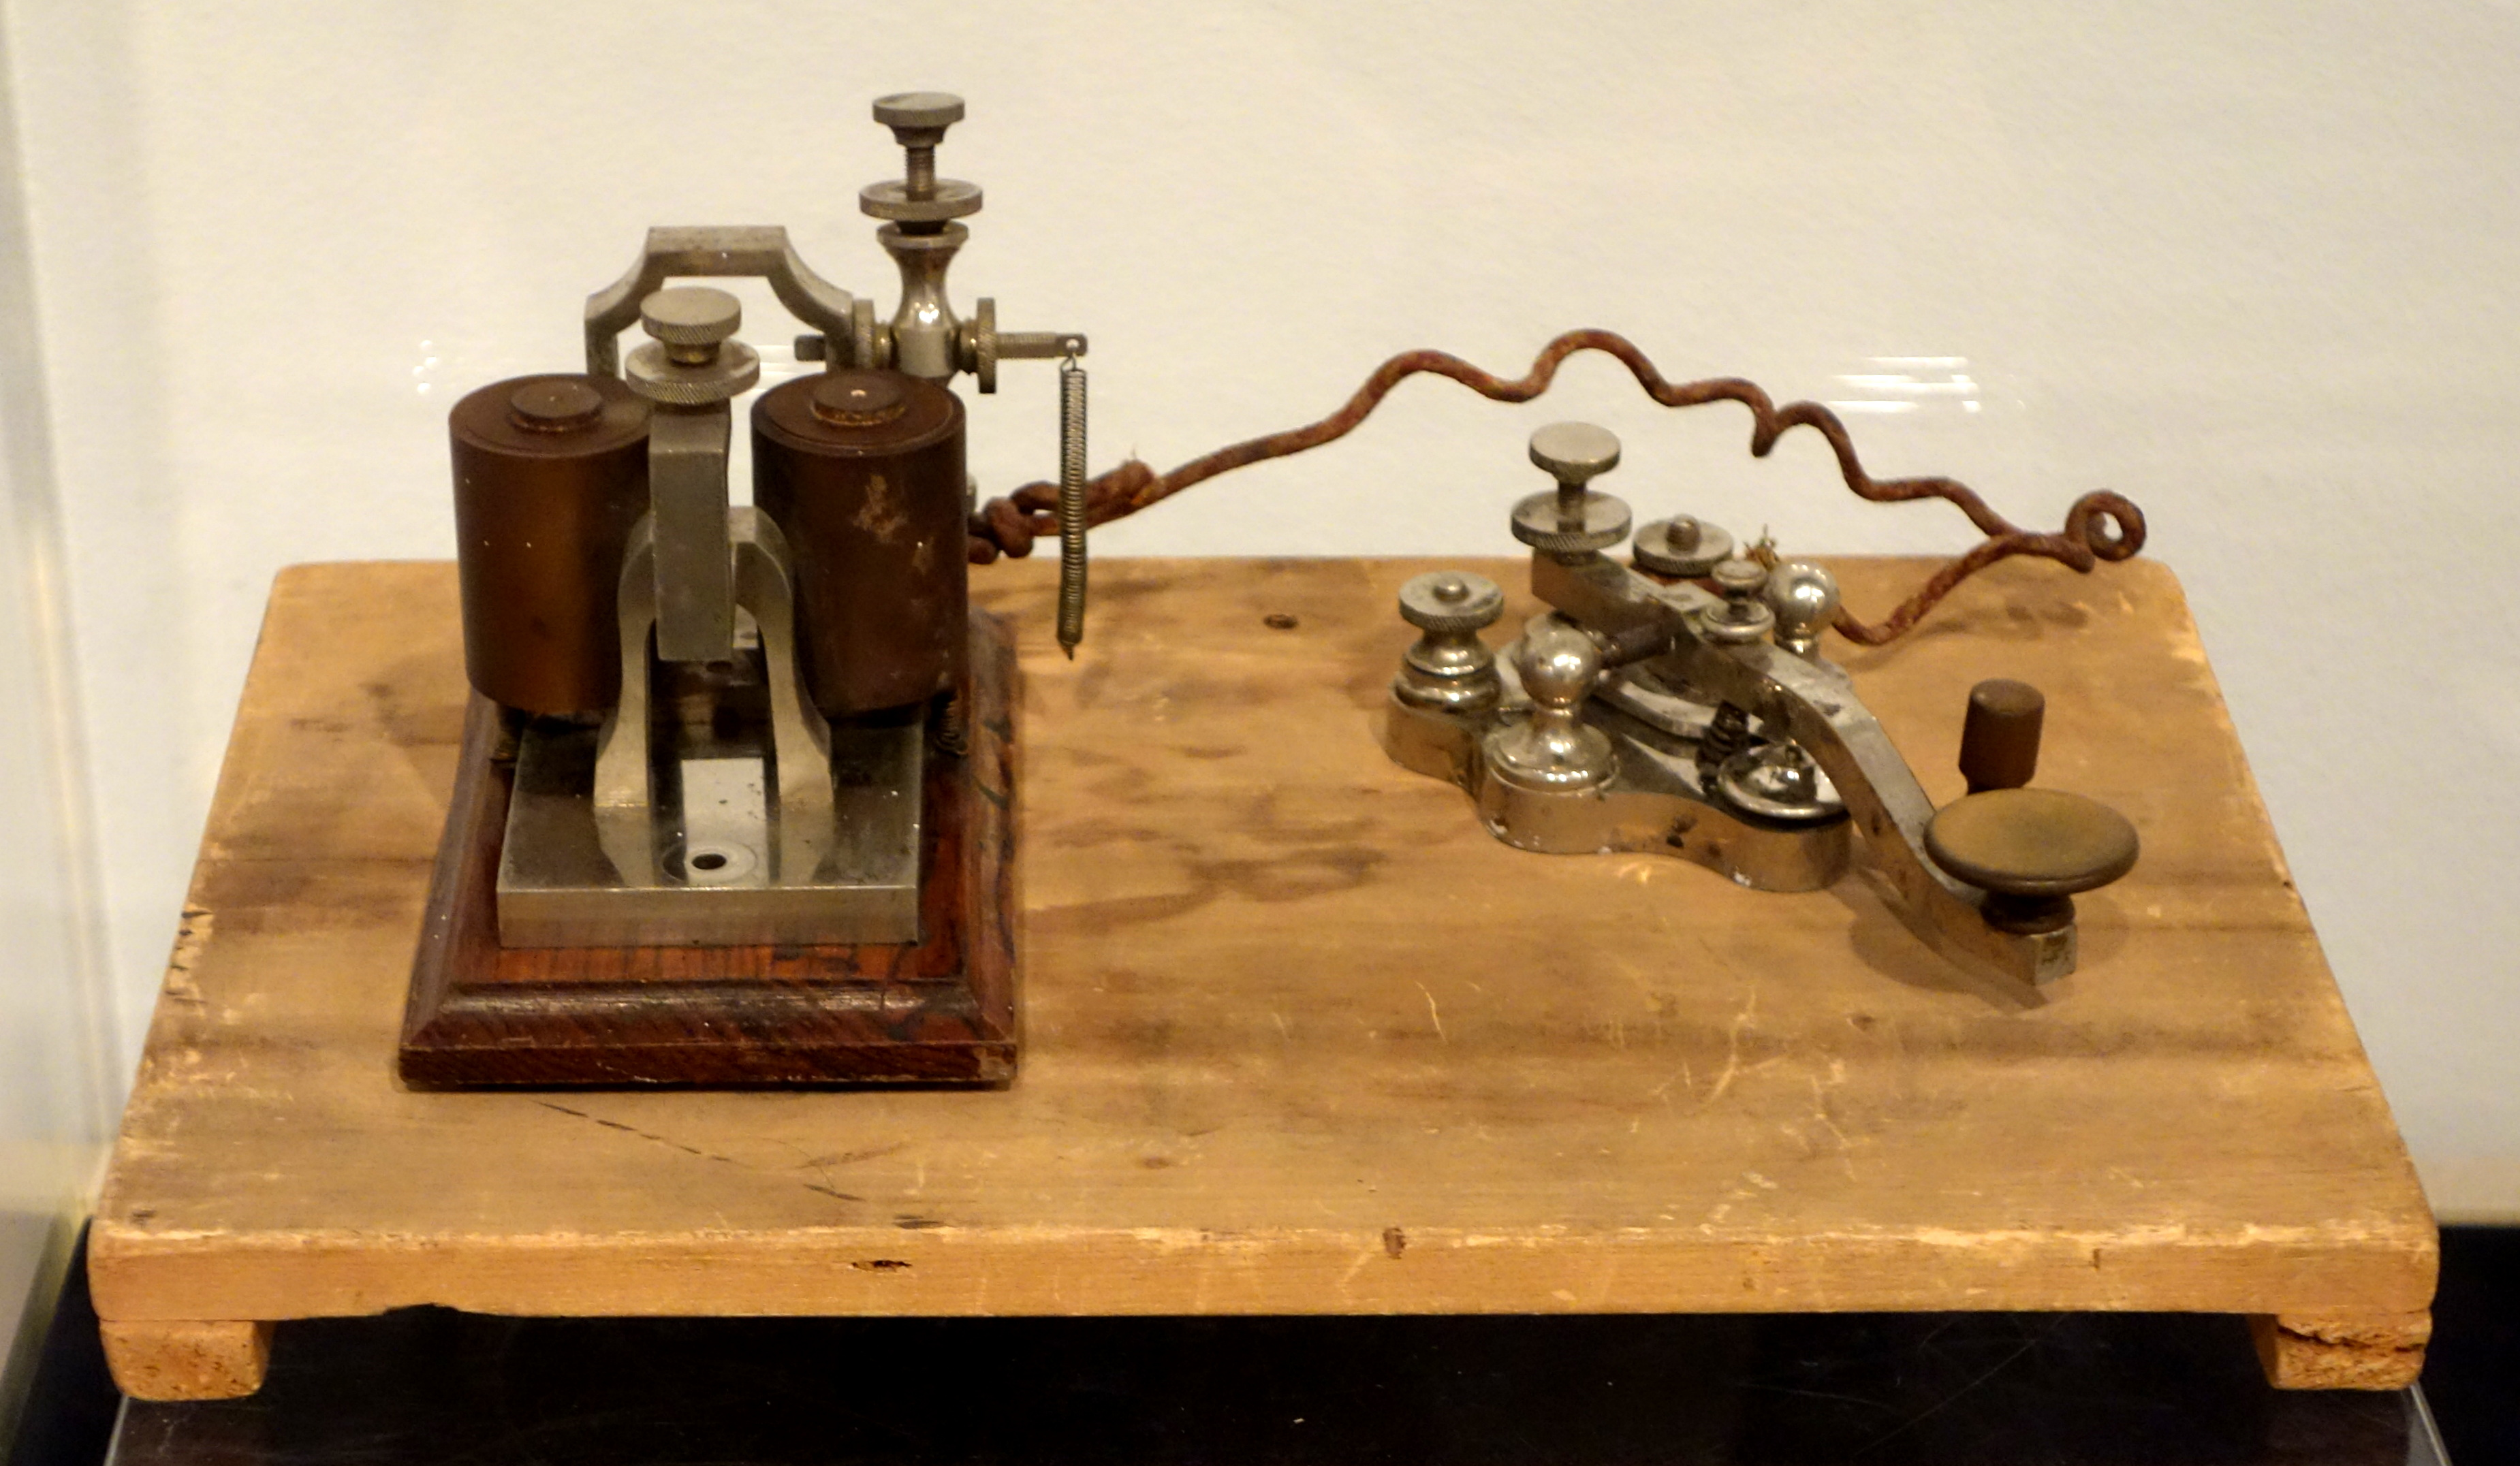 Telegraph key and sounder, 1876